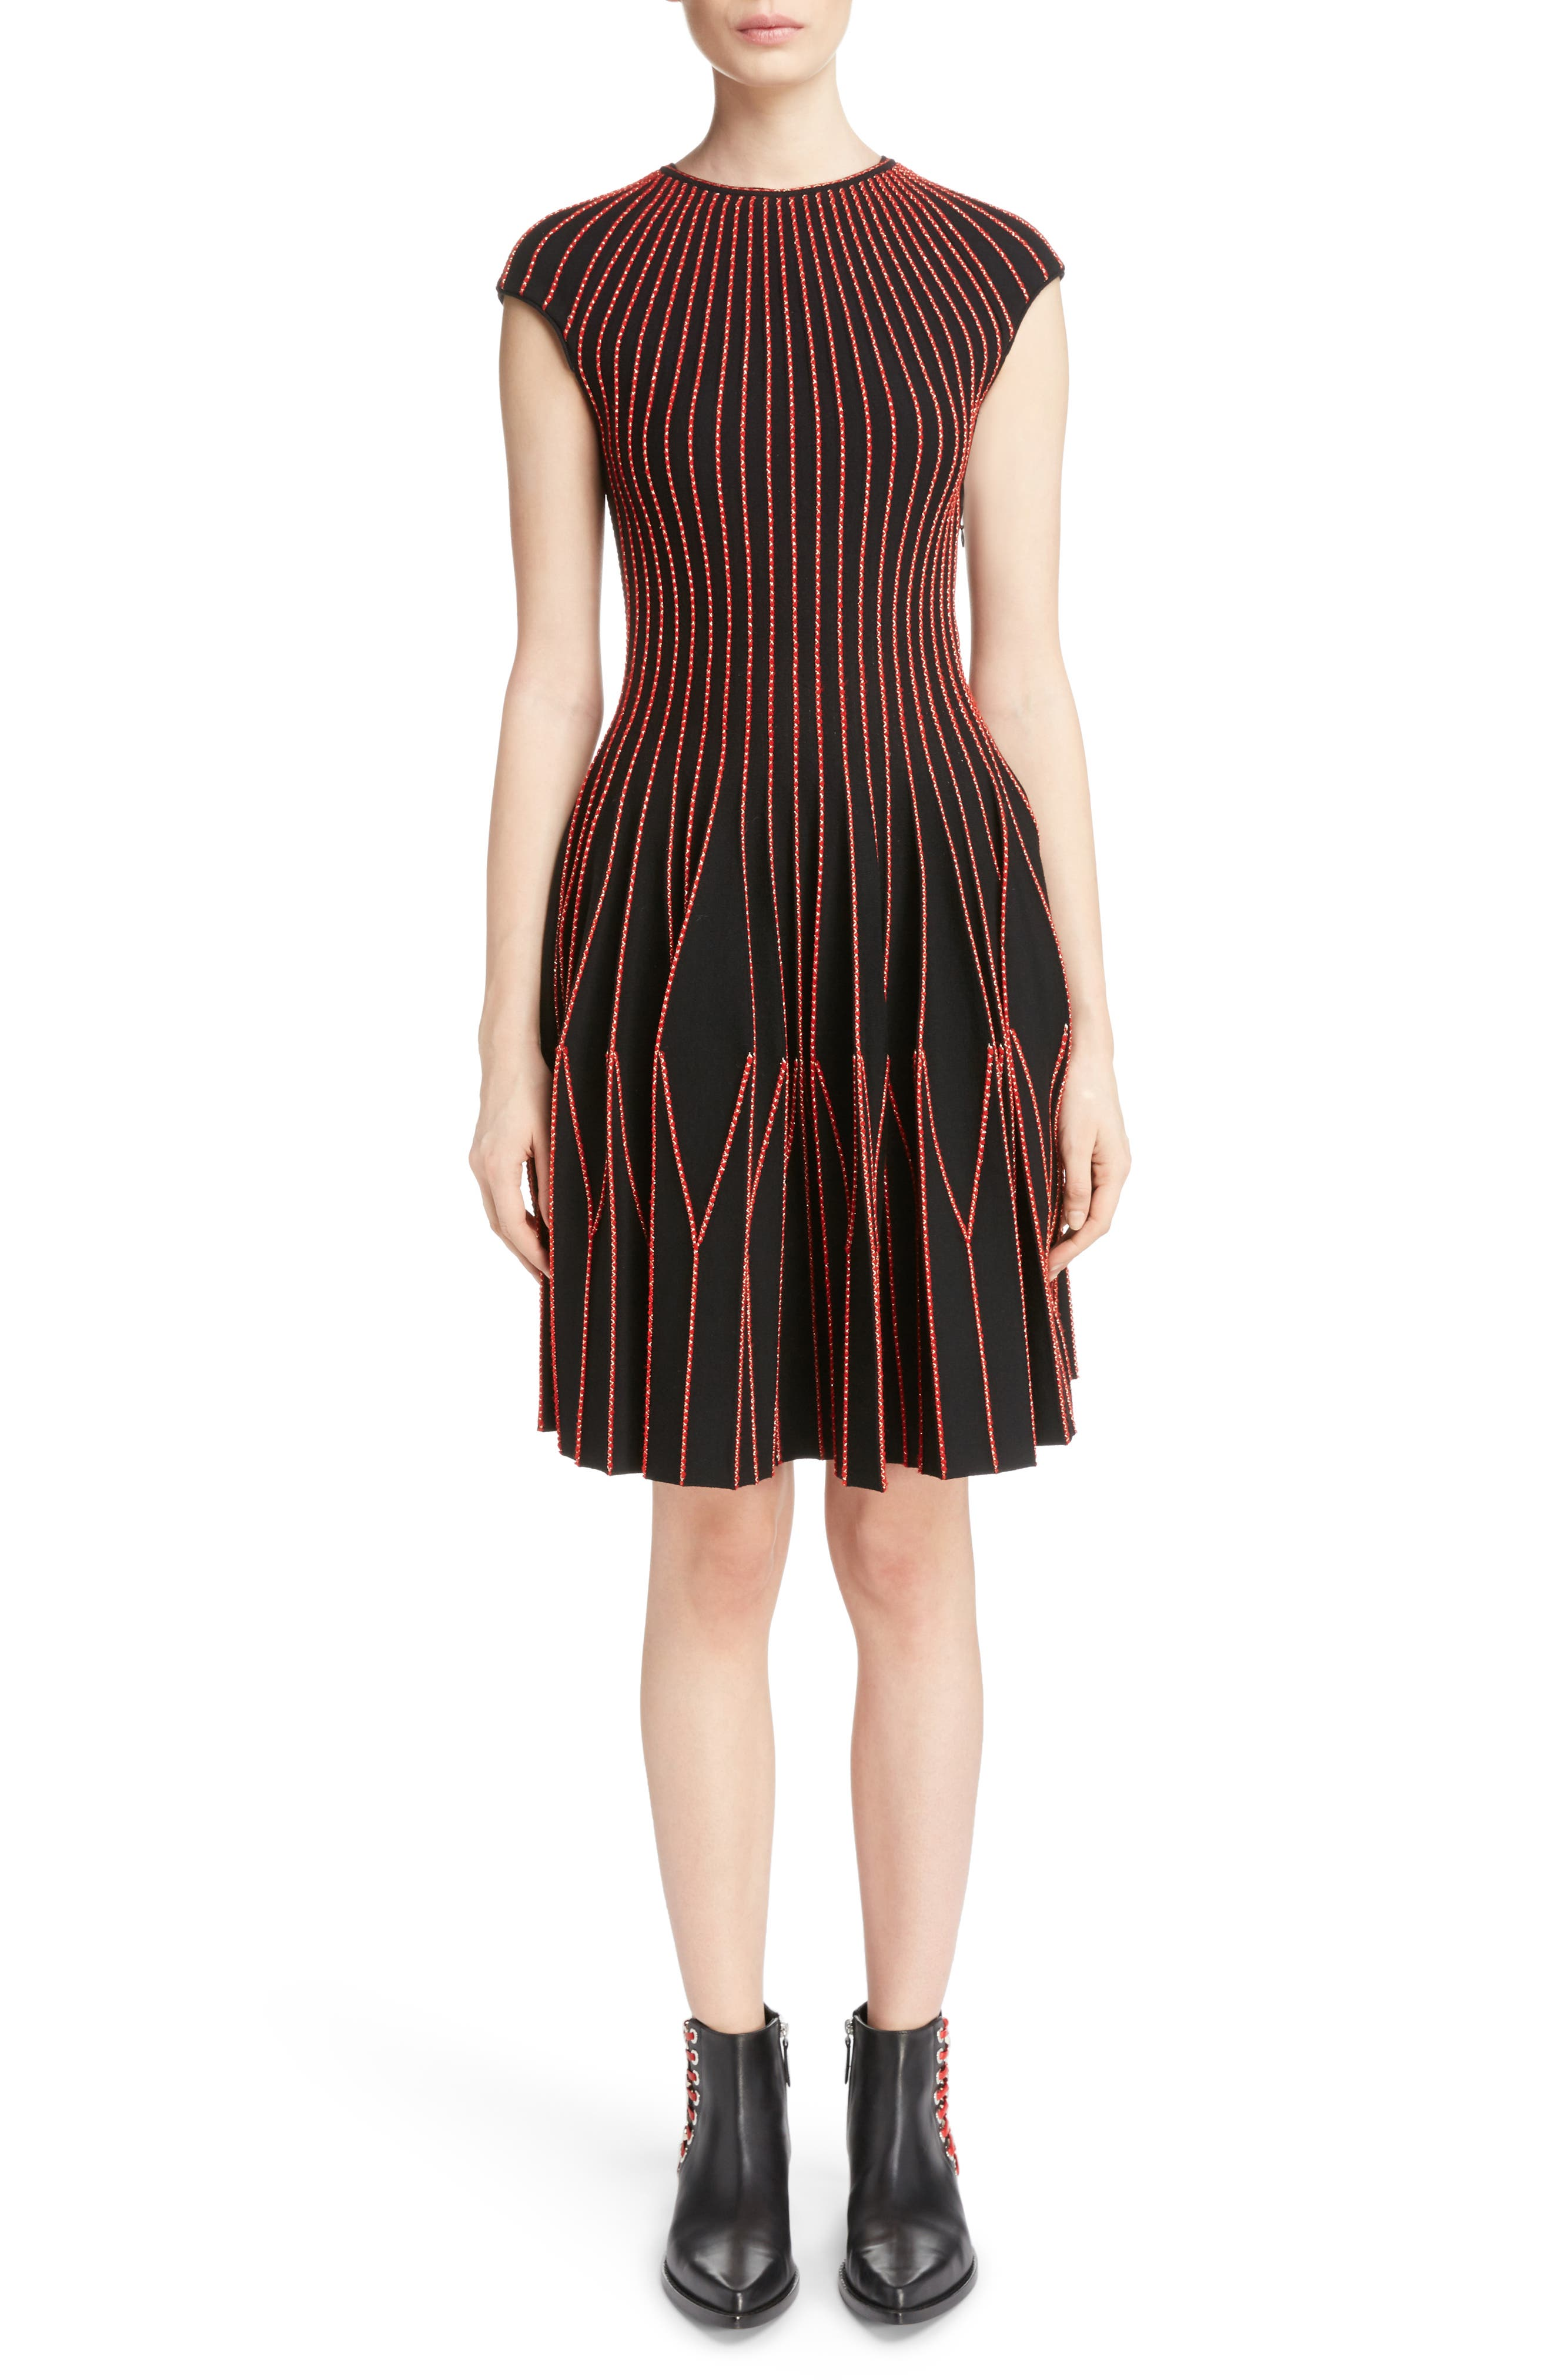 Main Image - Alexander McQueen Metallic Wool Blend Pleat Dress